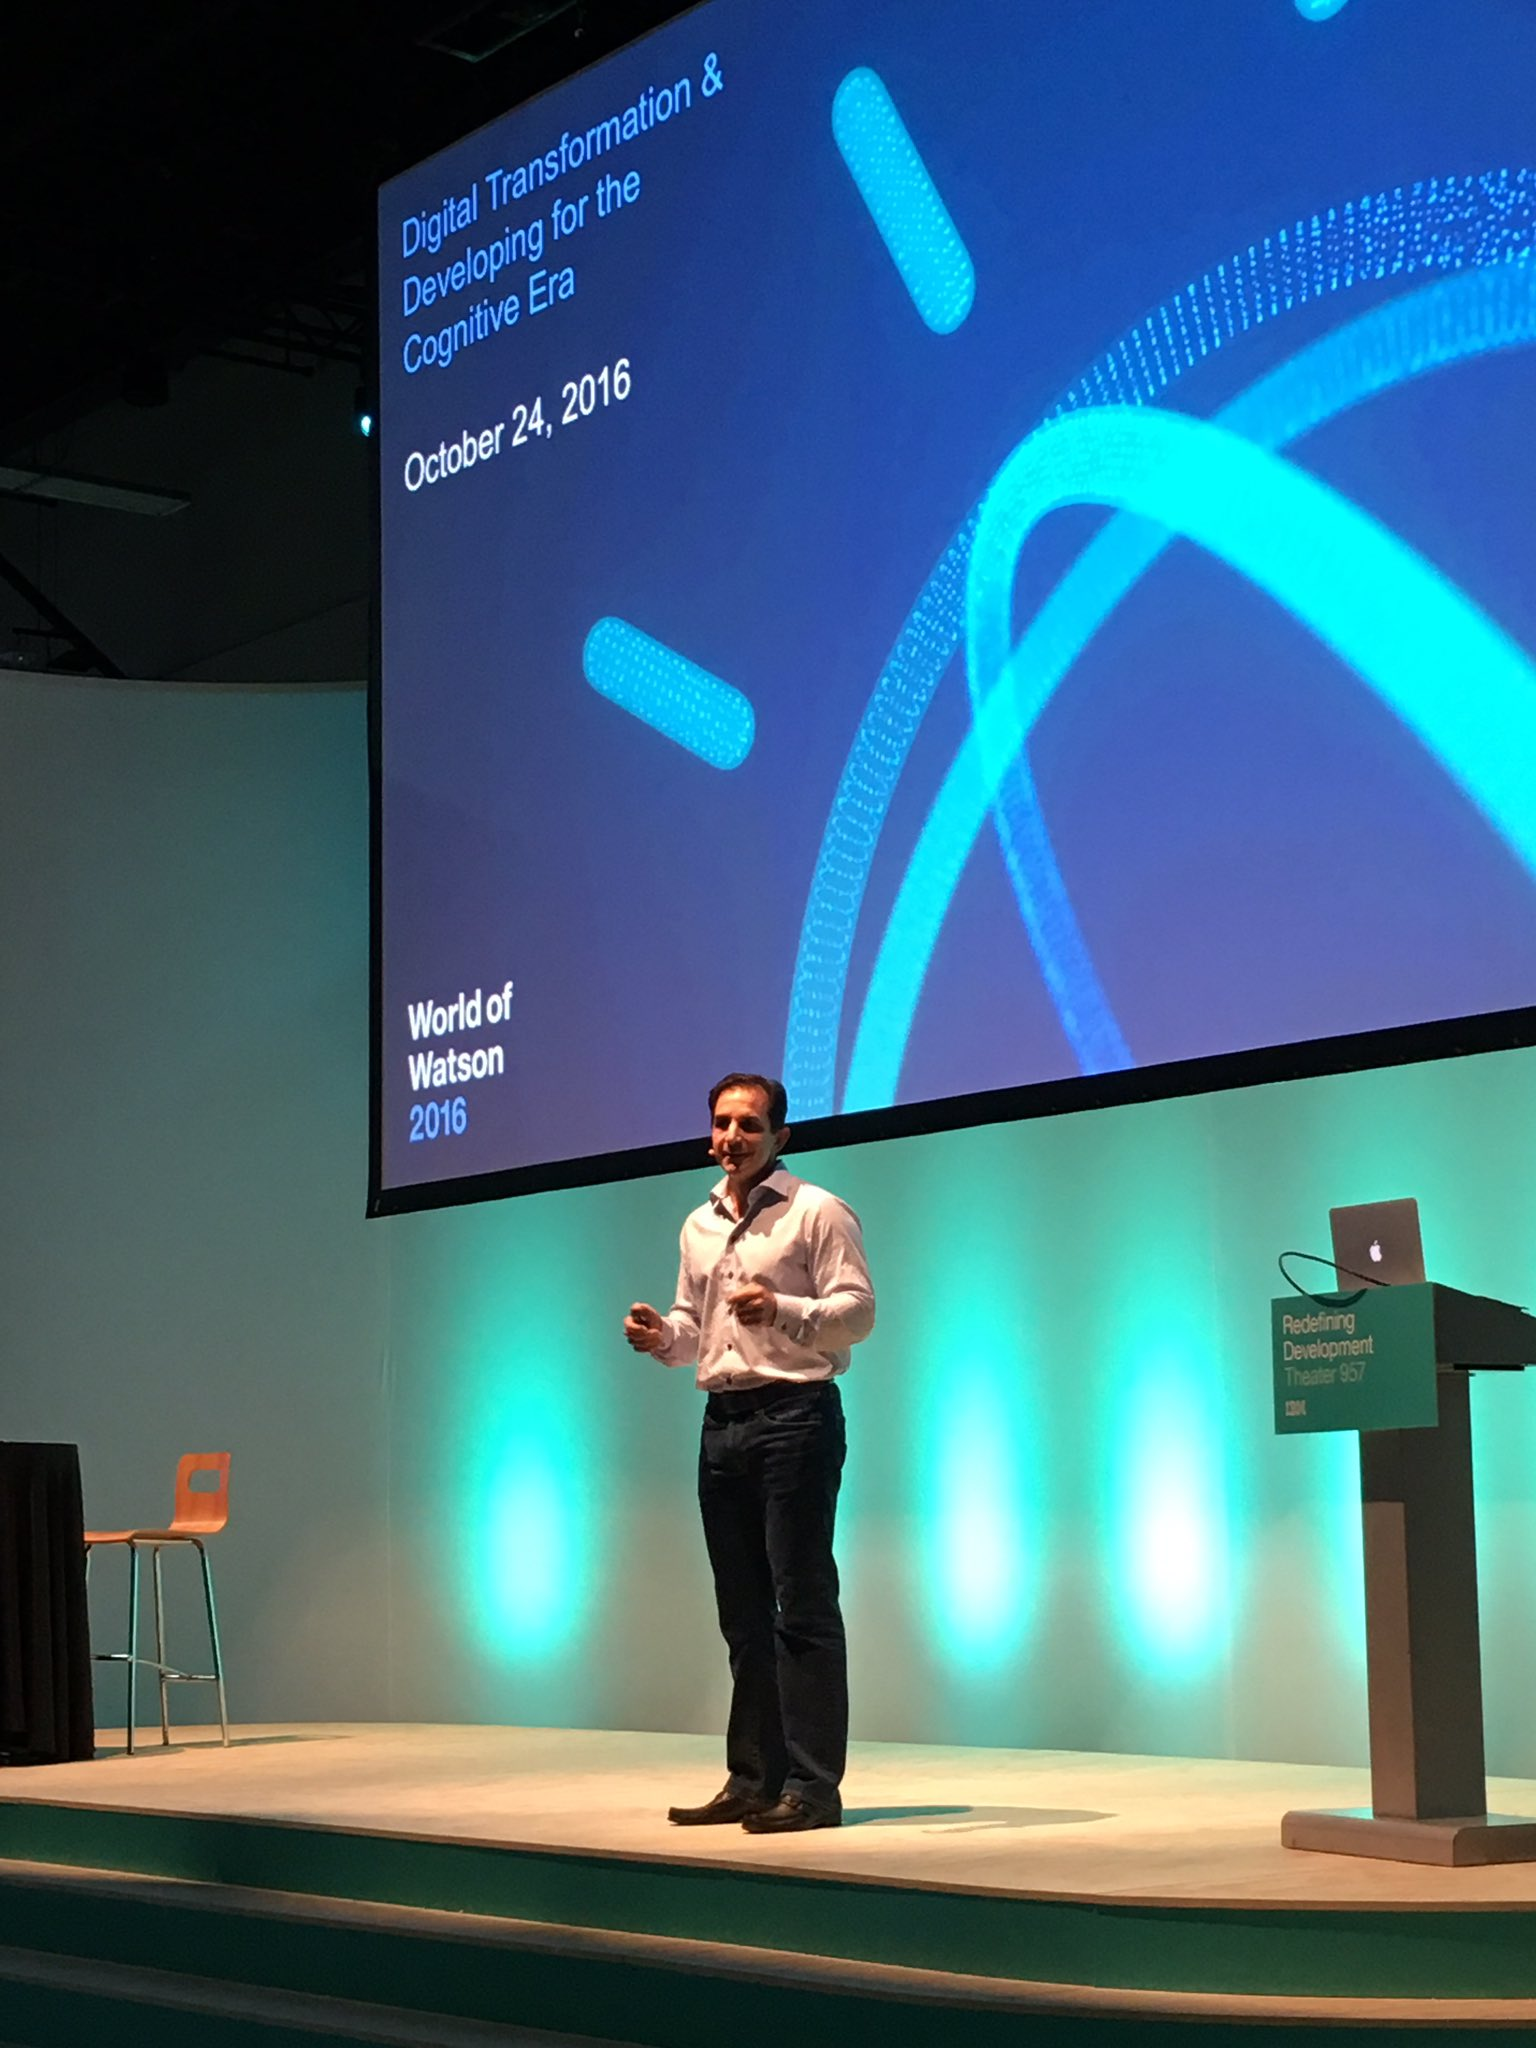 @rwlord kicks off a keynote on the #cognitiveera at #ibmwow https://t.co/bfNsjRcdWV